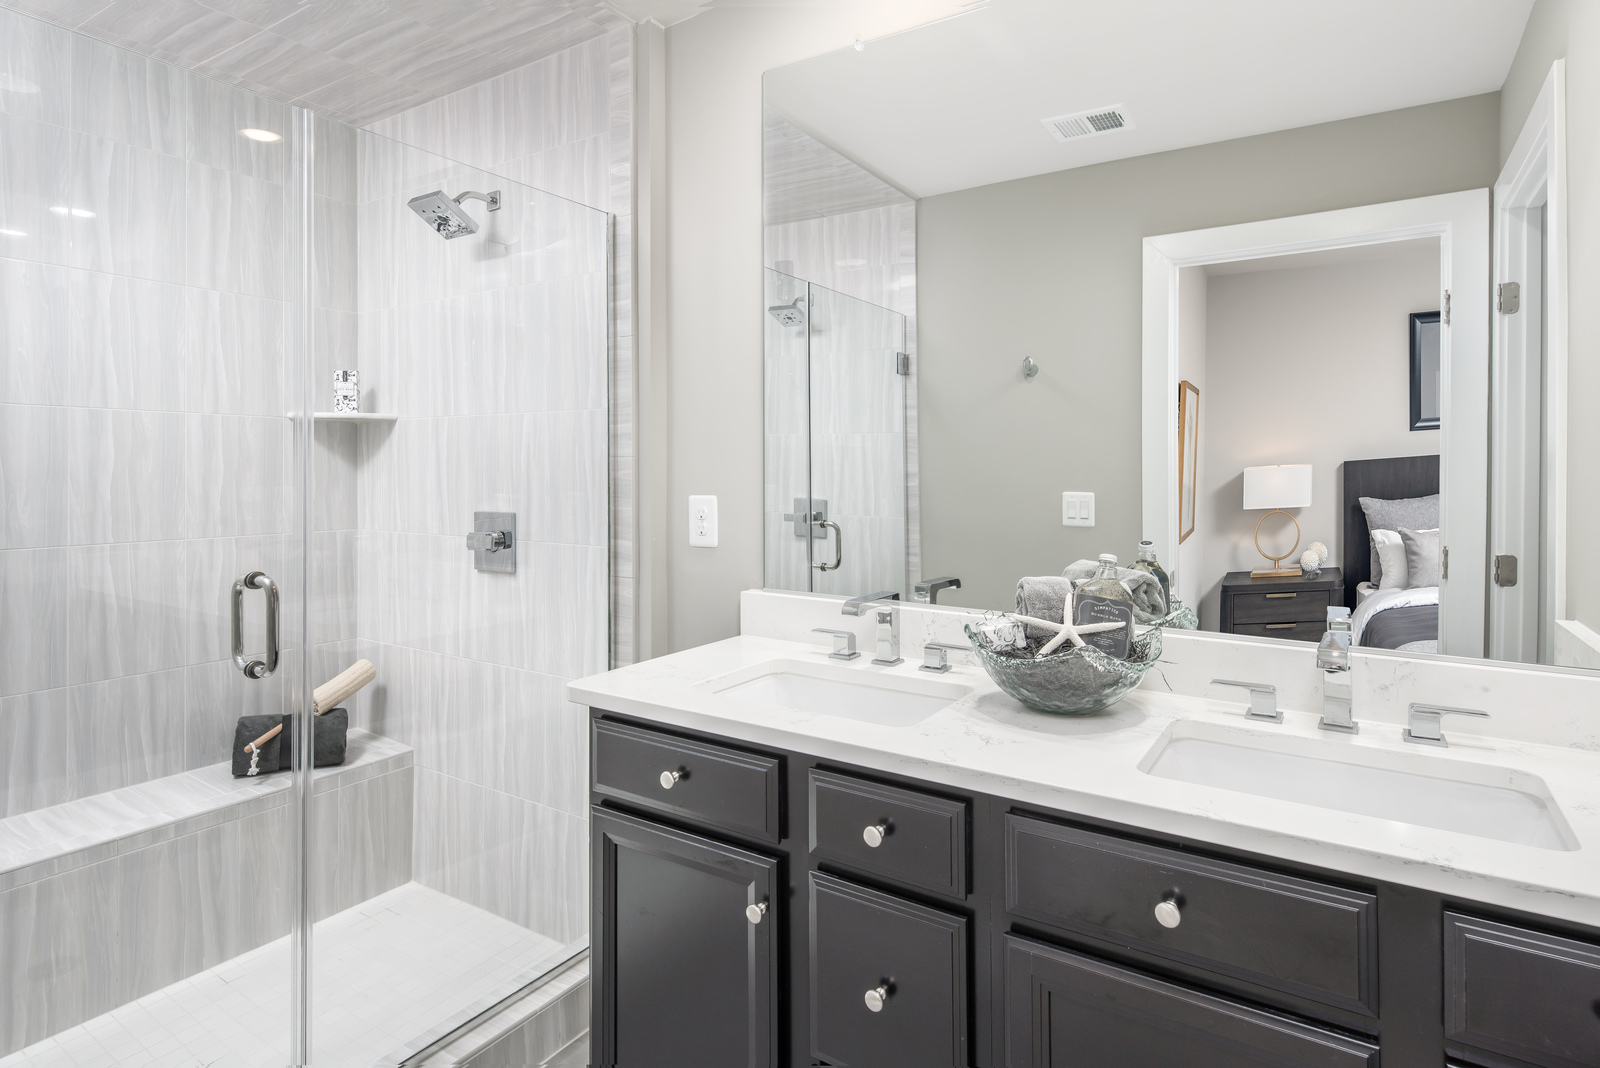 Only NVHomes includes designer finishes in our Signature Spa Bath.